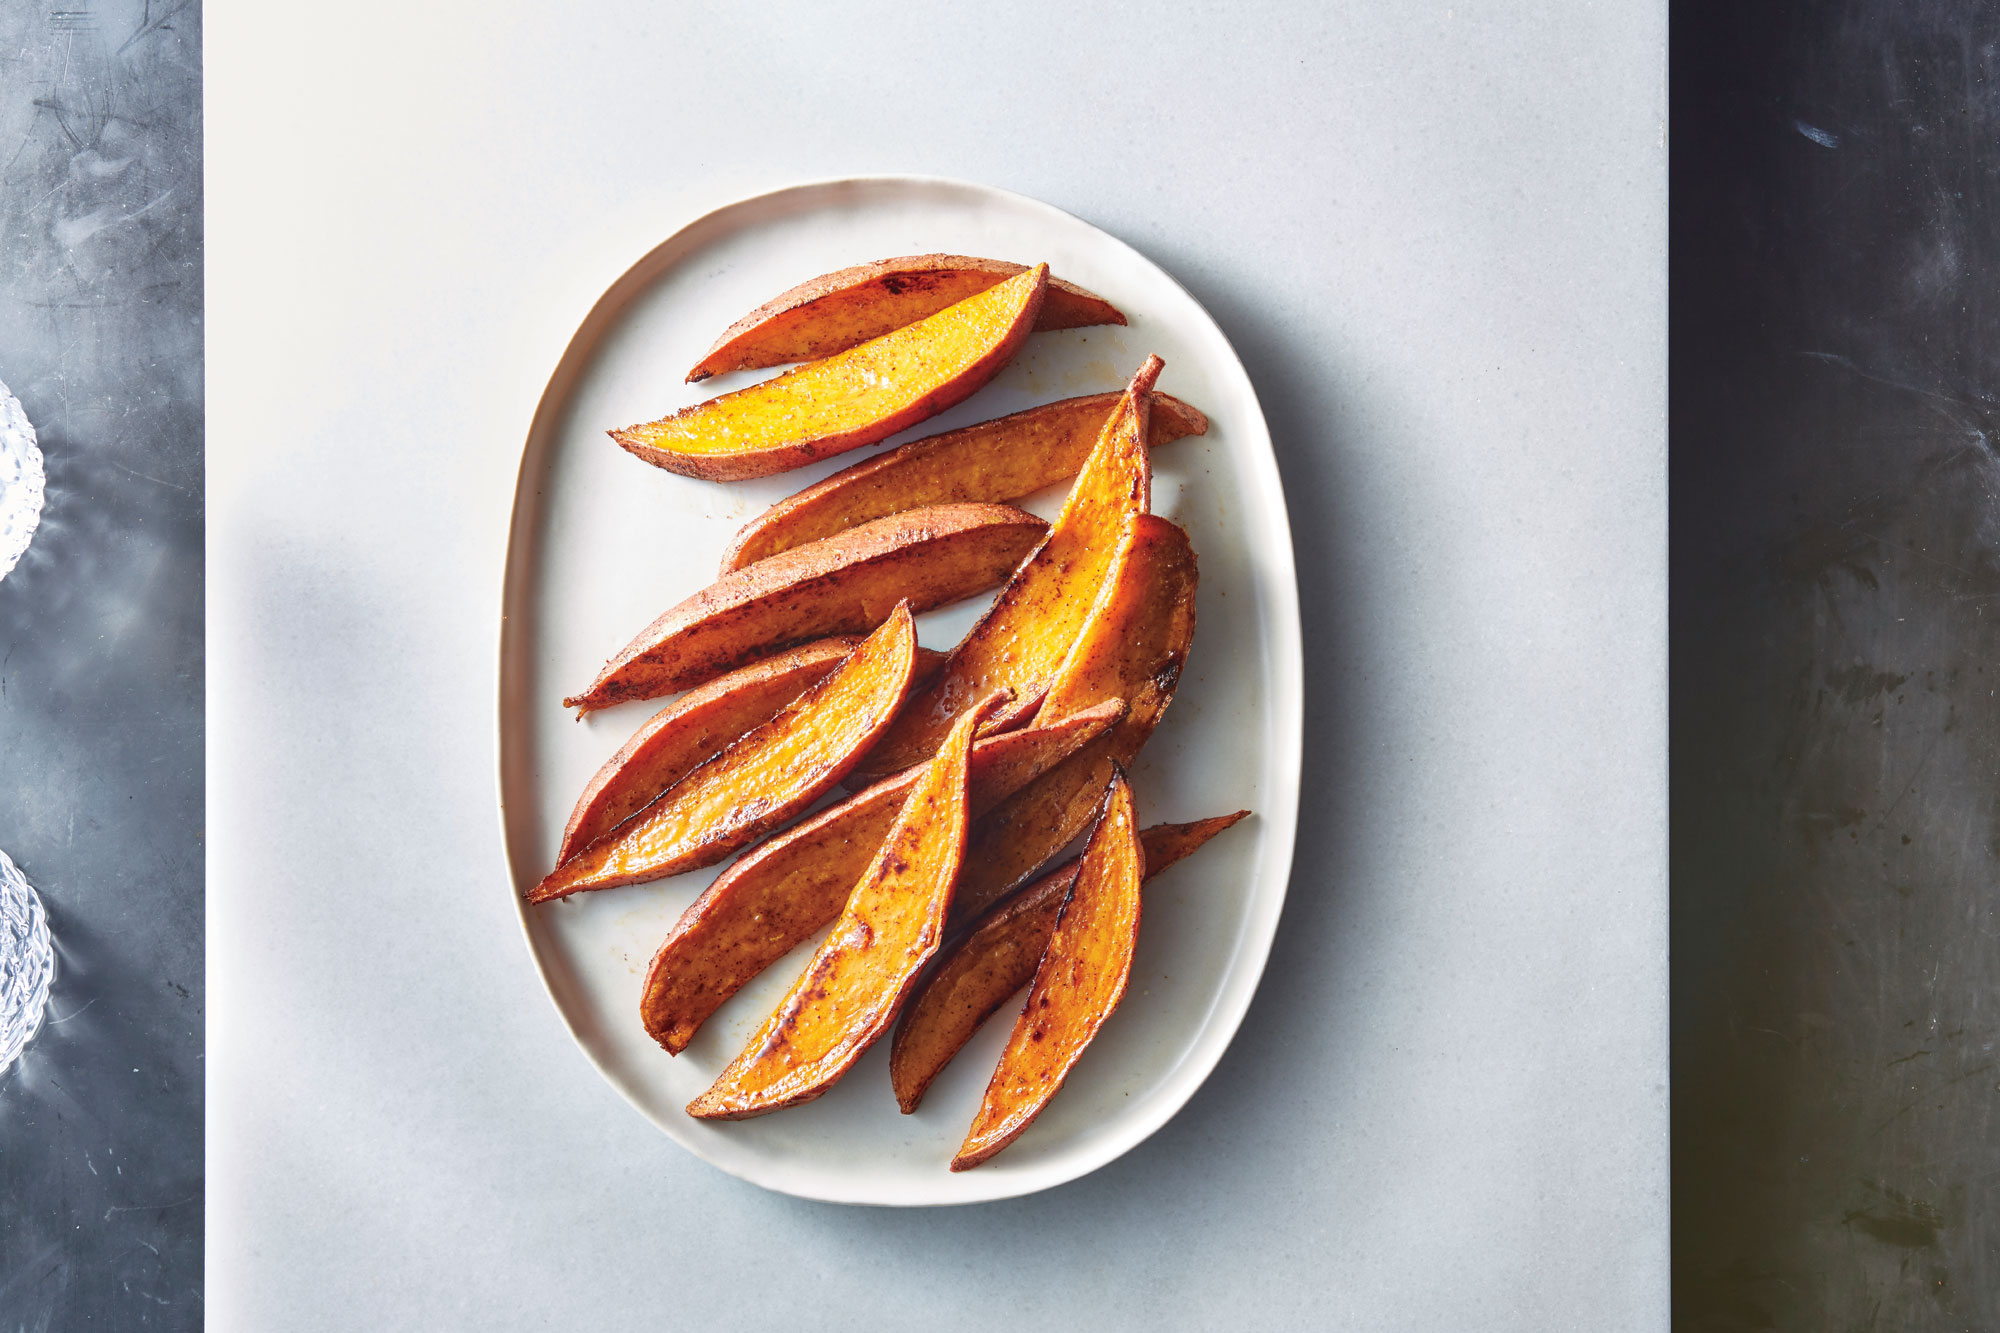 ck- Spicy Sweet Potato Wedges